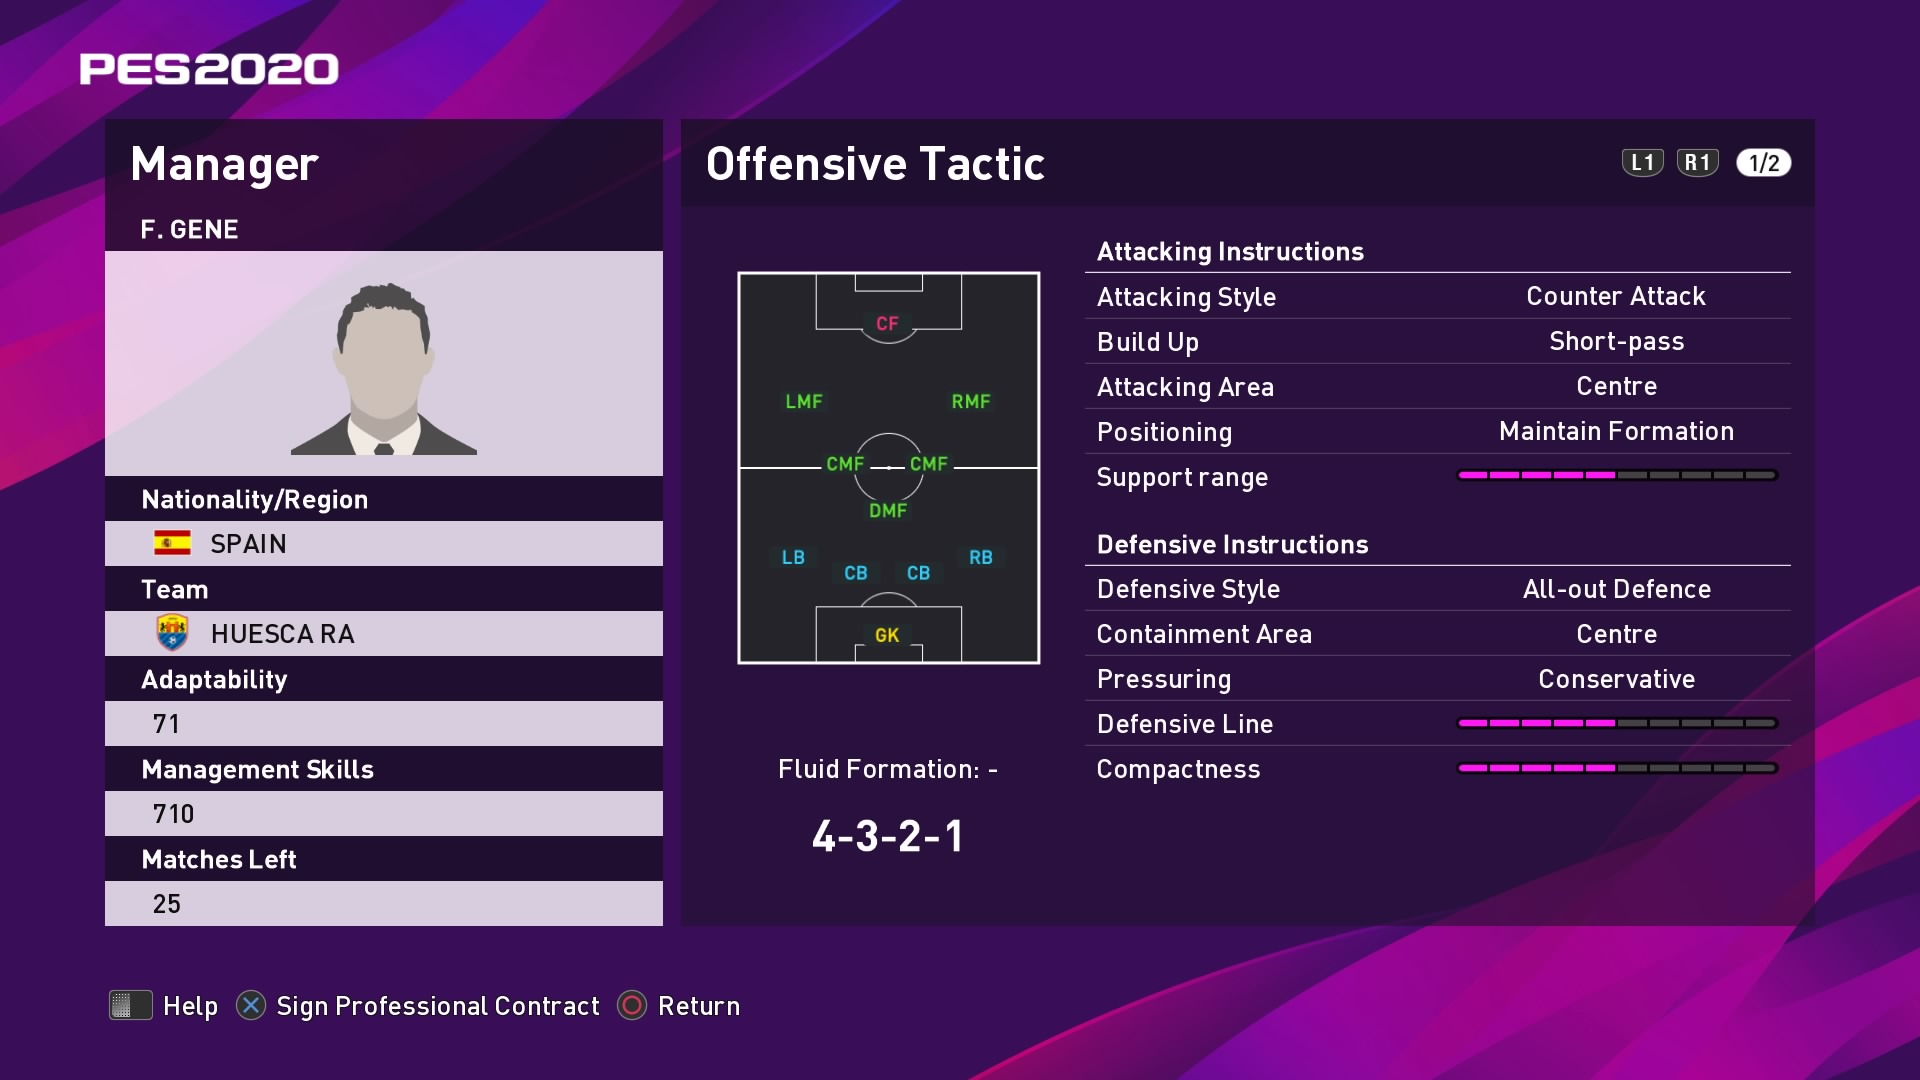 F. Gene (Míchel) Offensive Tactic in PES 2020 myClub